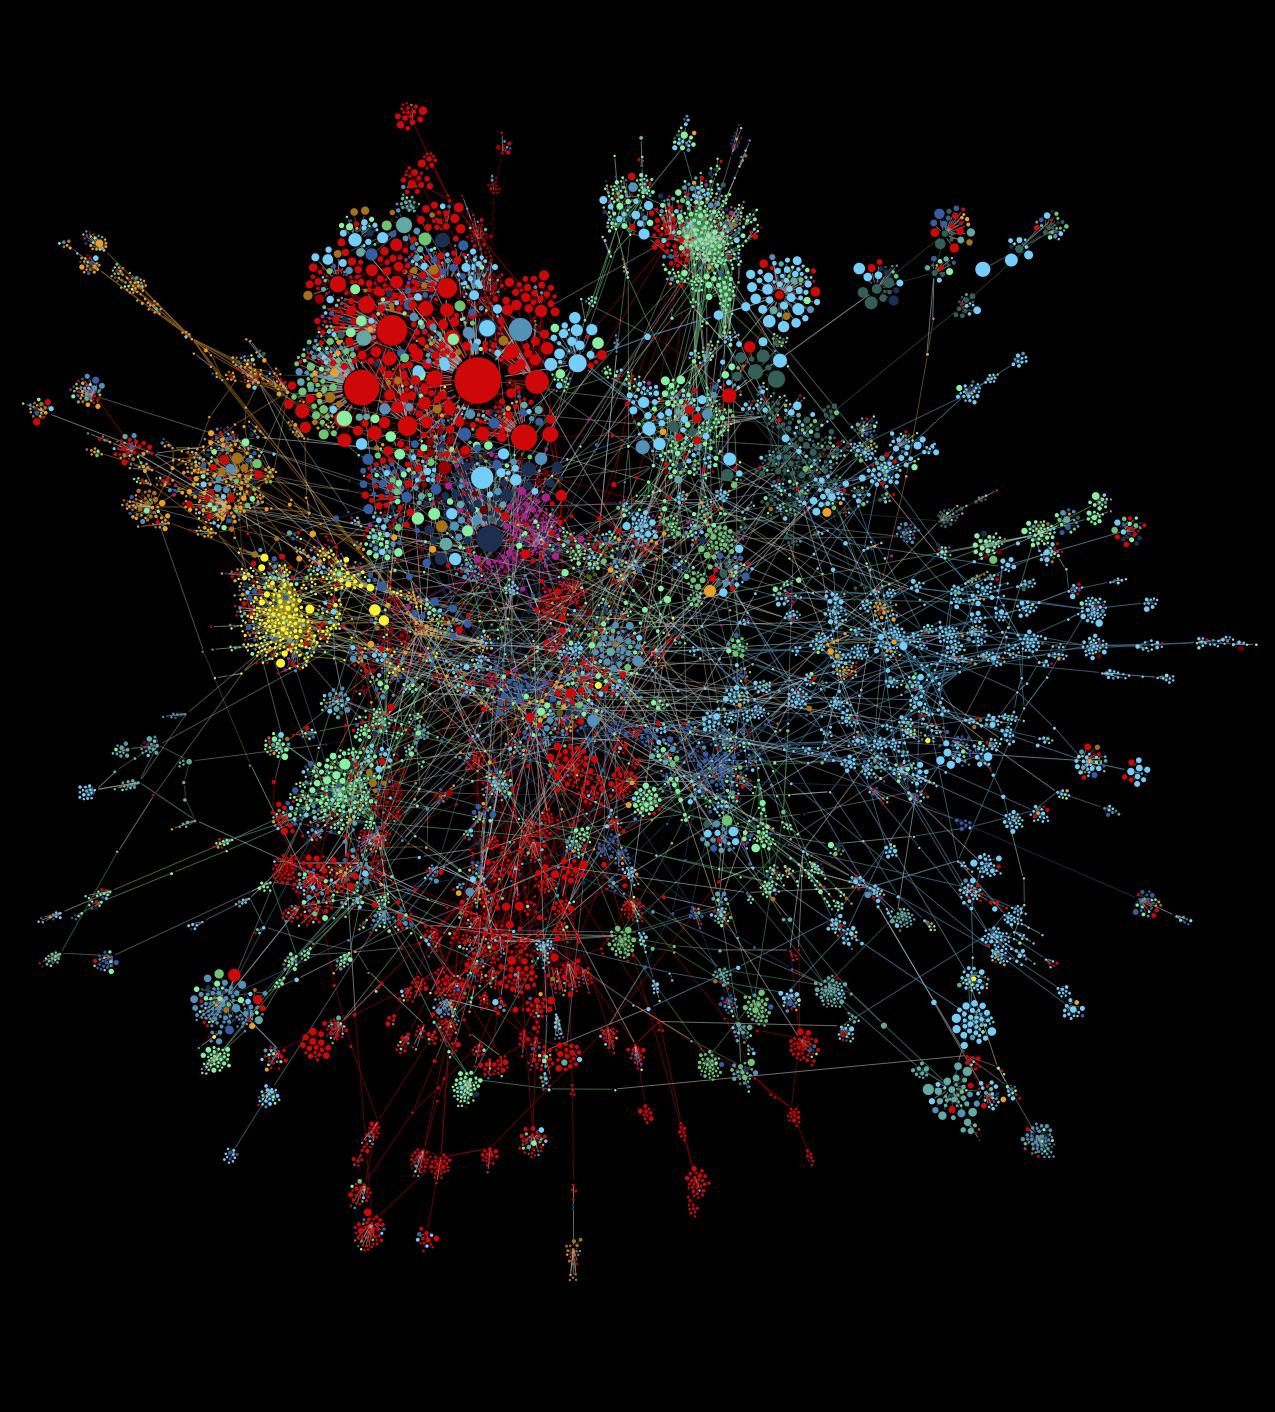 A visualization of a network is shown. The network consists of several, color-coded groupings.